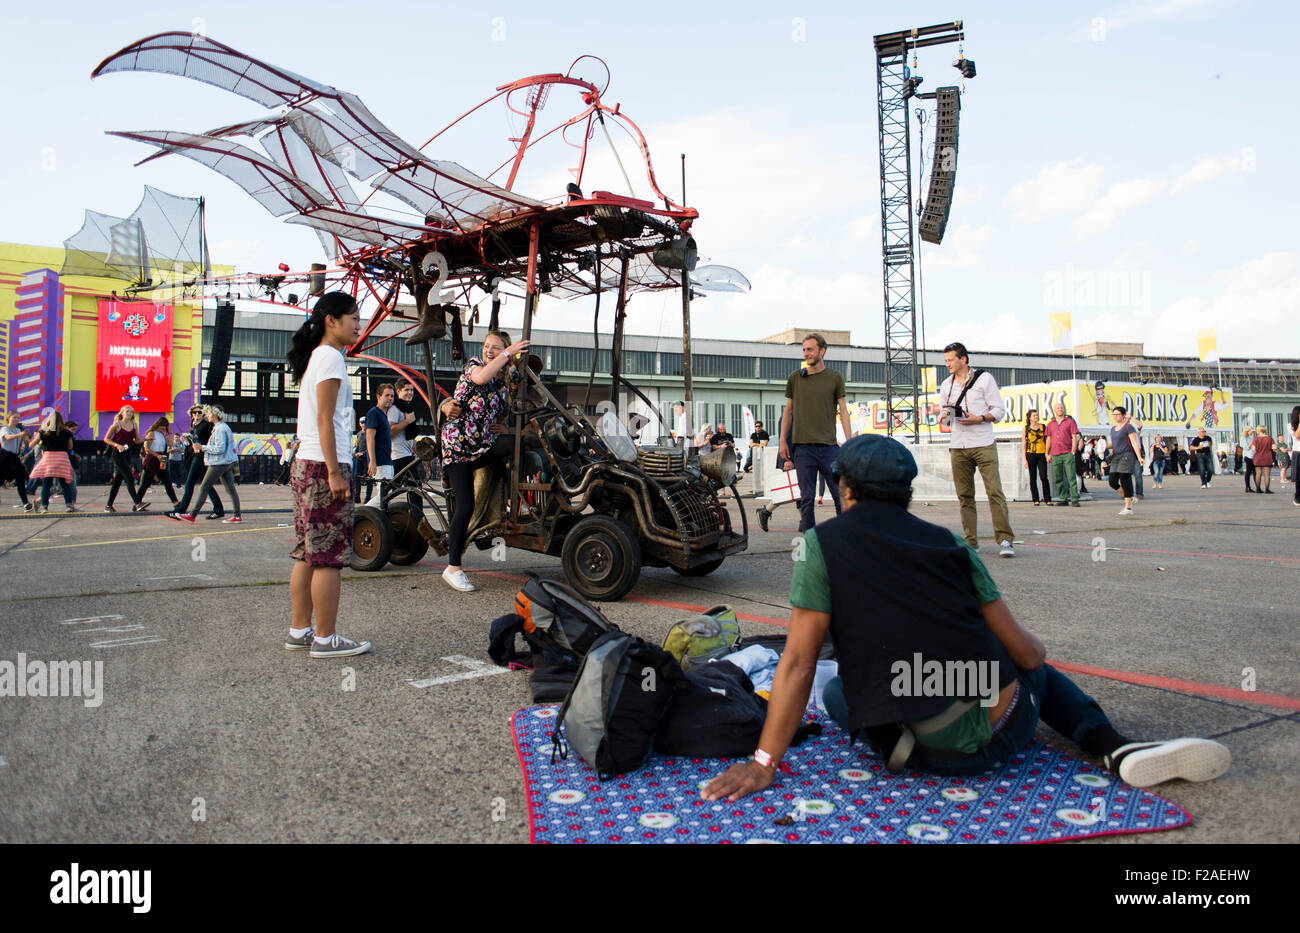 Berlin, Germany. 12th Sep, 2015. Performance artists drive with steampunk vehicles through a crowd of visitors during - Stock Image